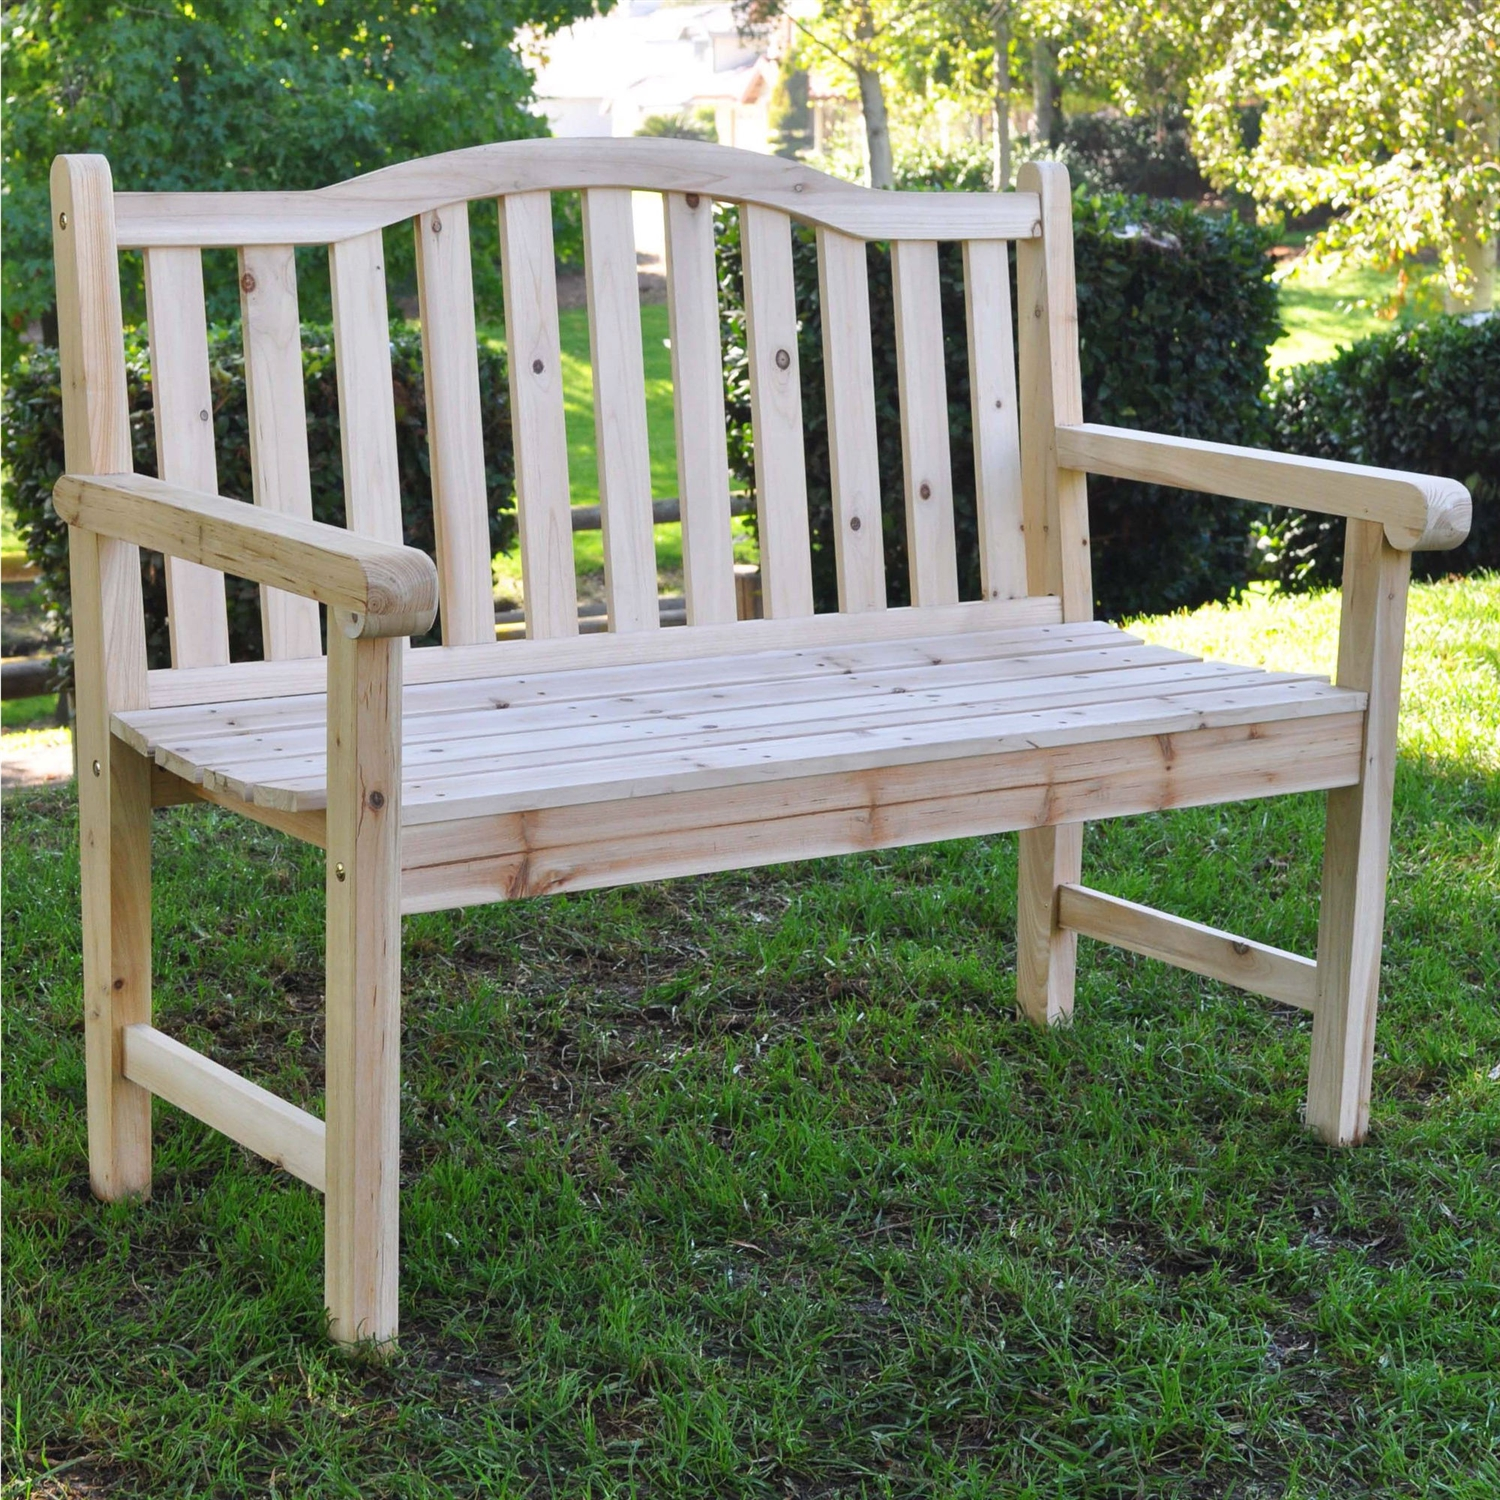 Outdoor Cedar Wood Garden Bench in Natural with 475lbs Weight